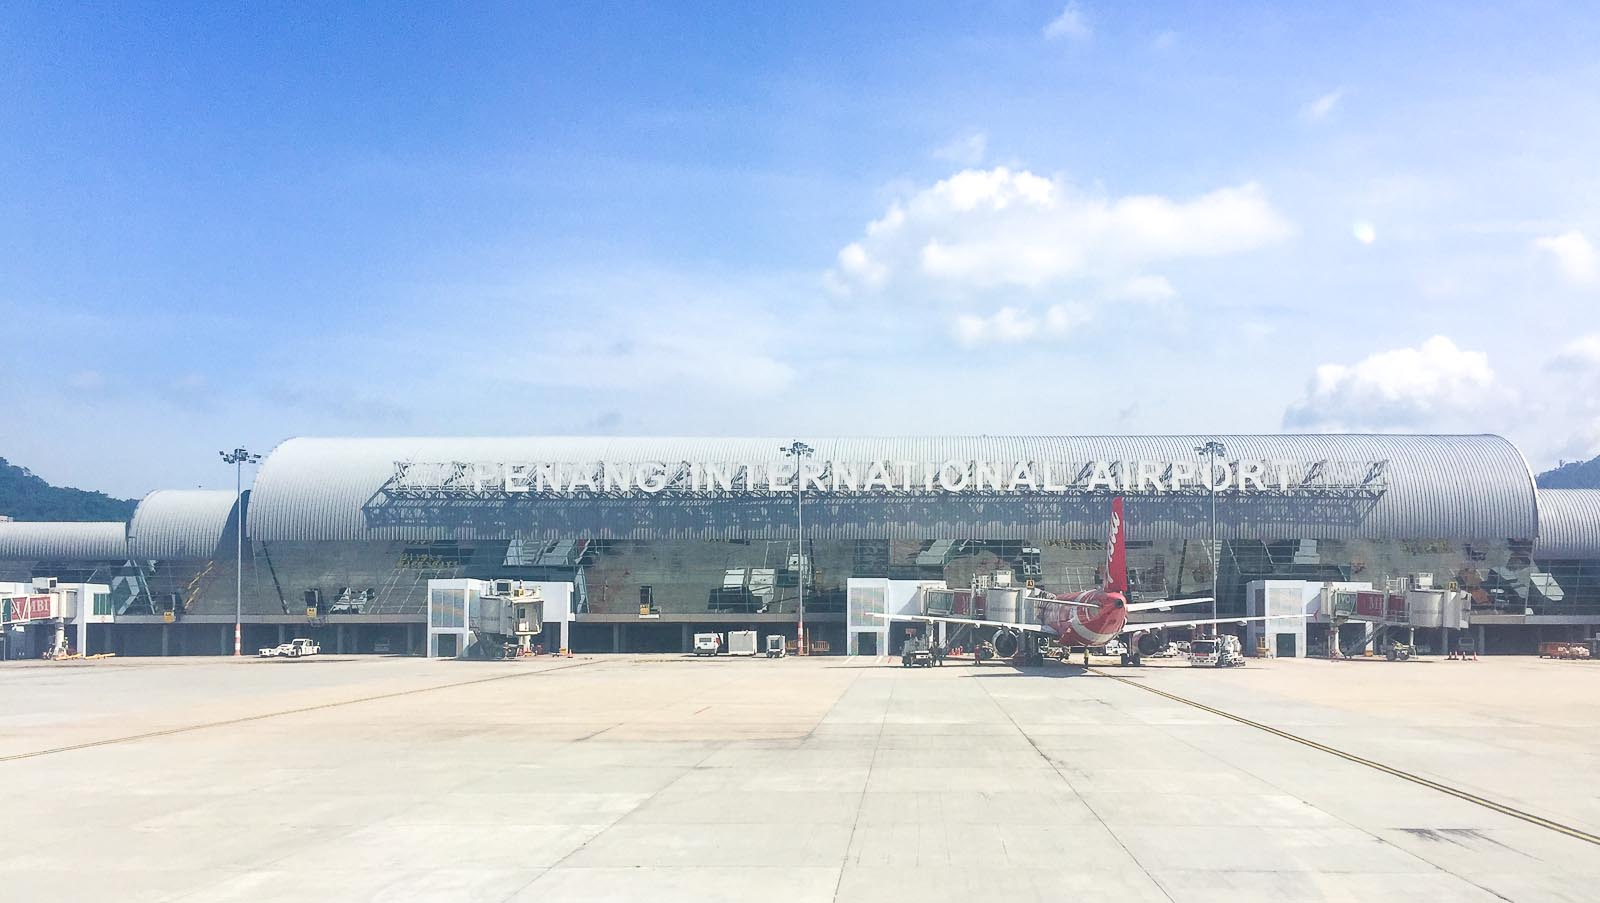 Penang International Airport: things you should know